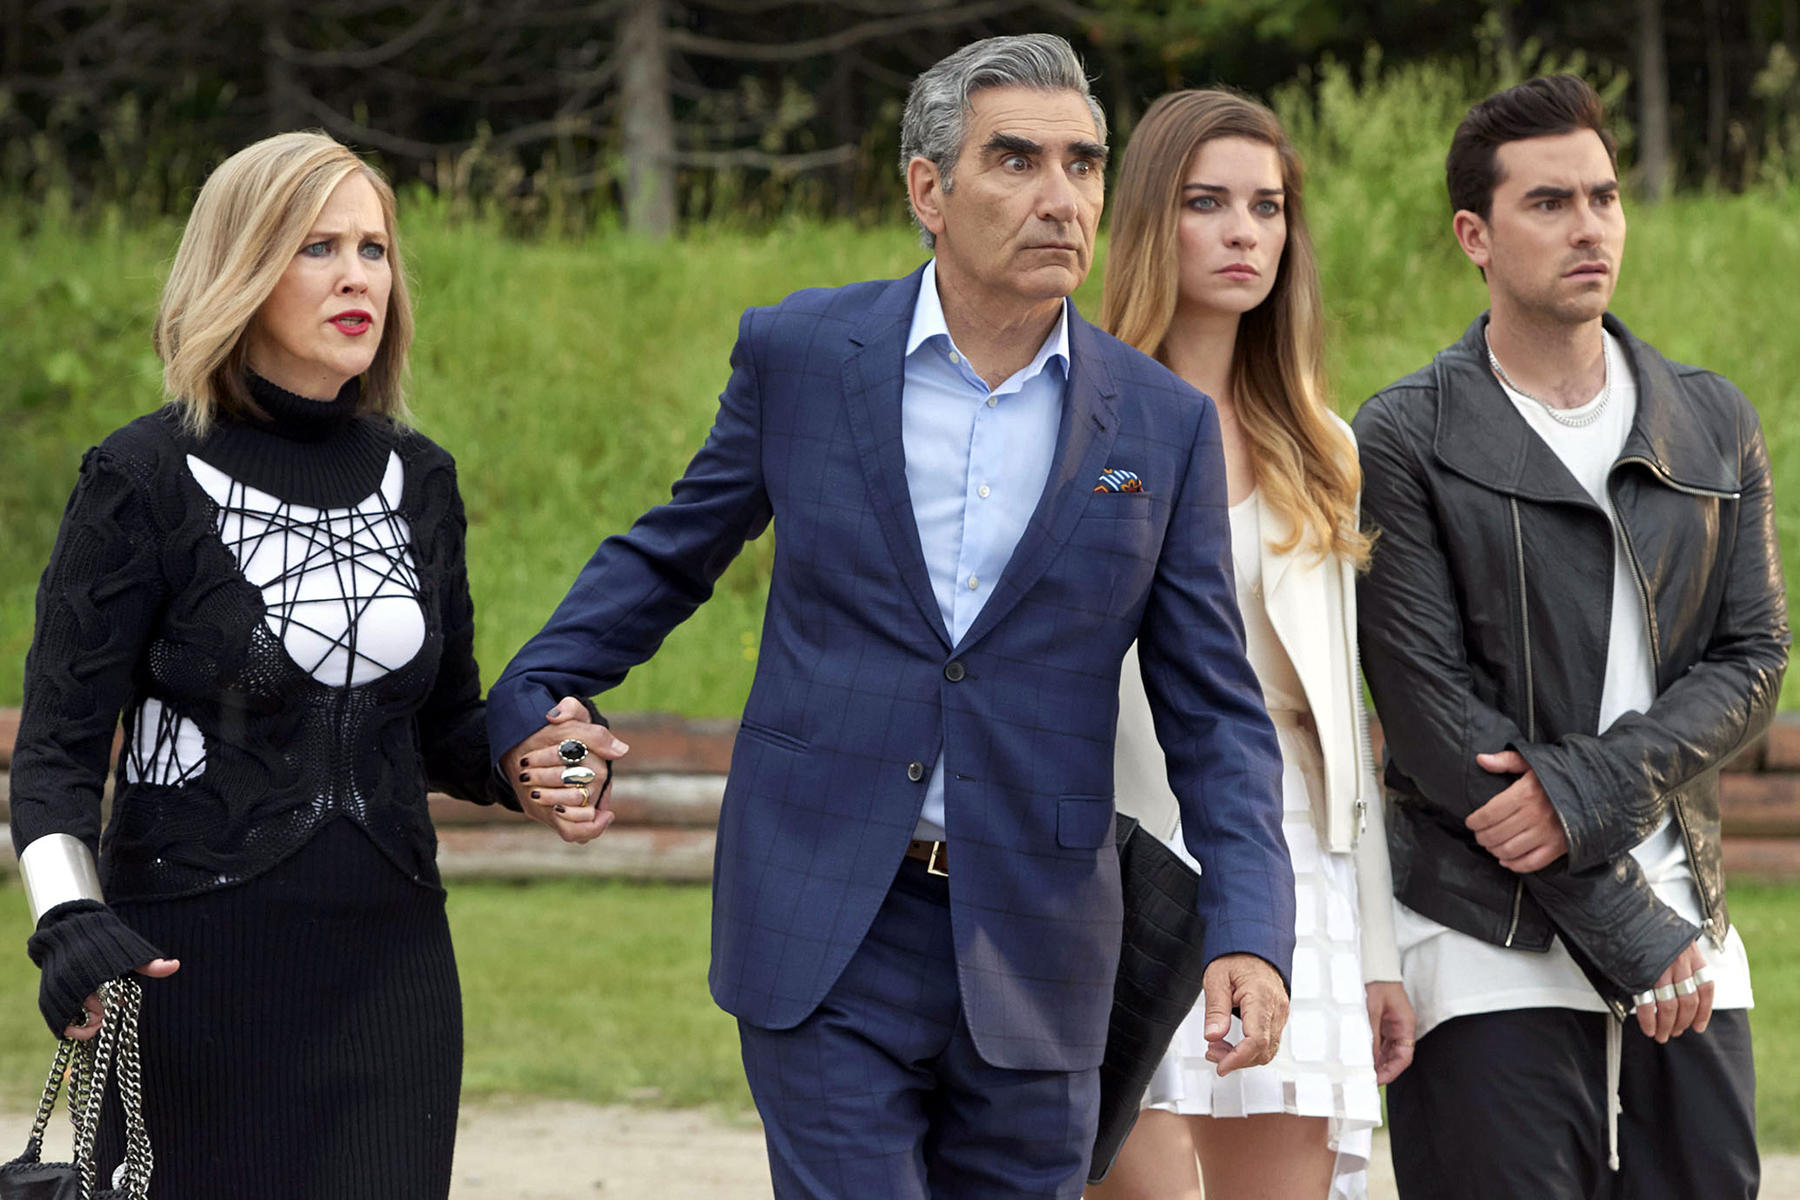 Johnny, Moira, David and Alexis Claire Rose moved to a little town called Schitt's Creek after their rich lives were turned upside down.